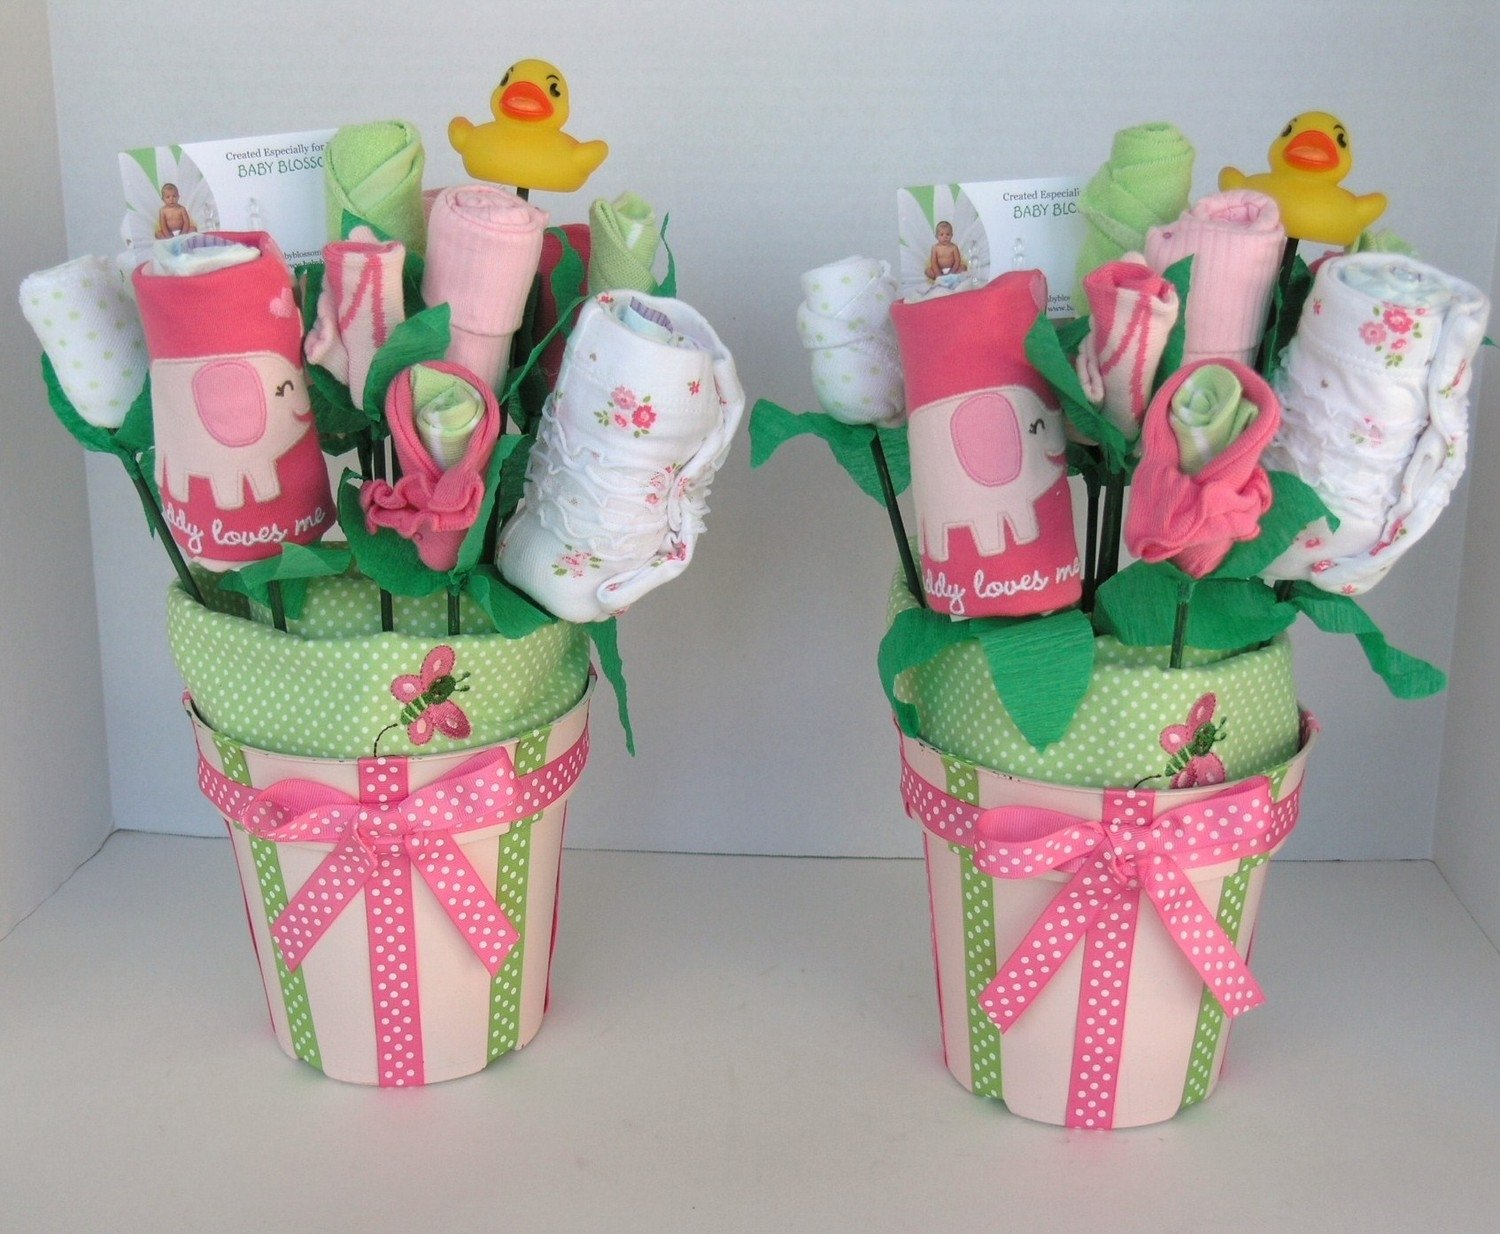 10 Fabulous Ideas For Baby Shower Gifts flower diaper unique baby shower gift ideas baby shower ideas gallery 2020